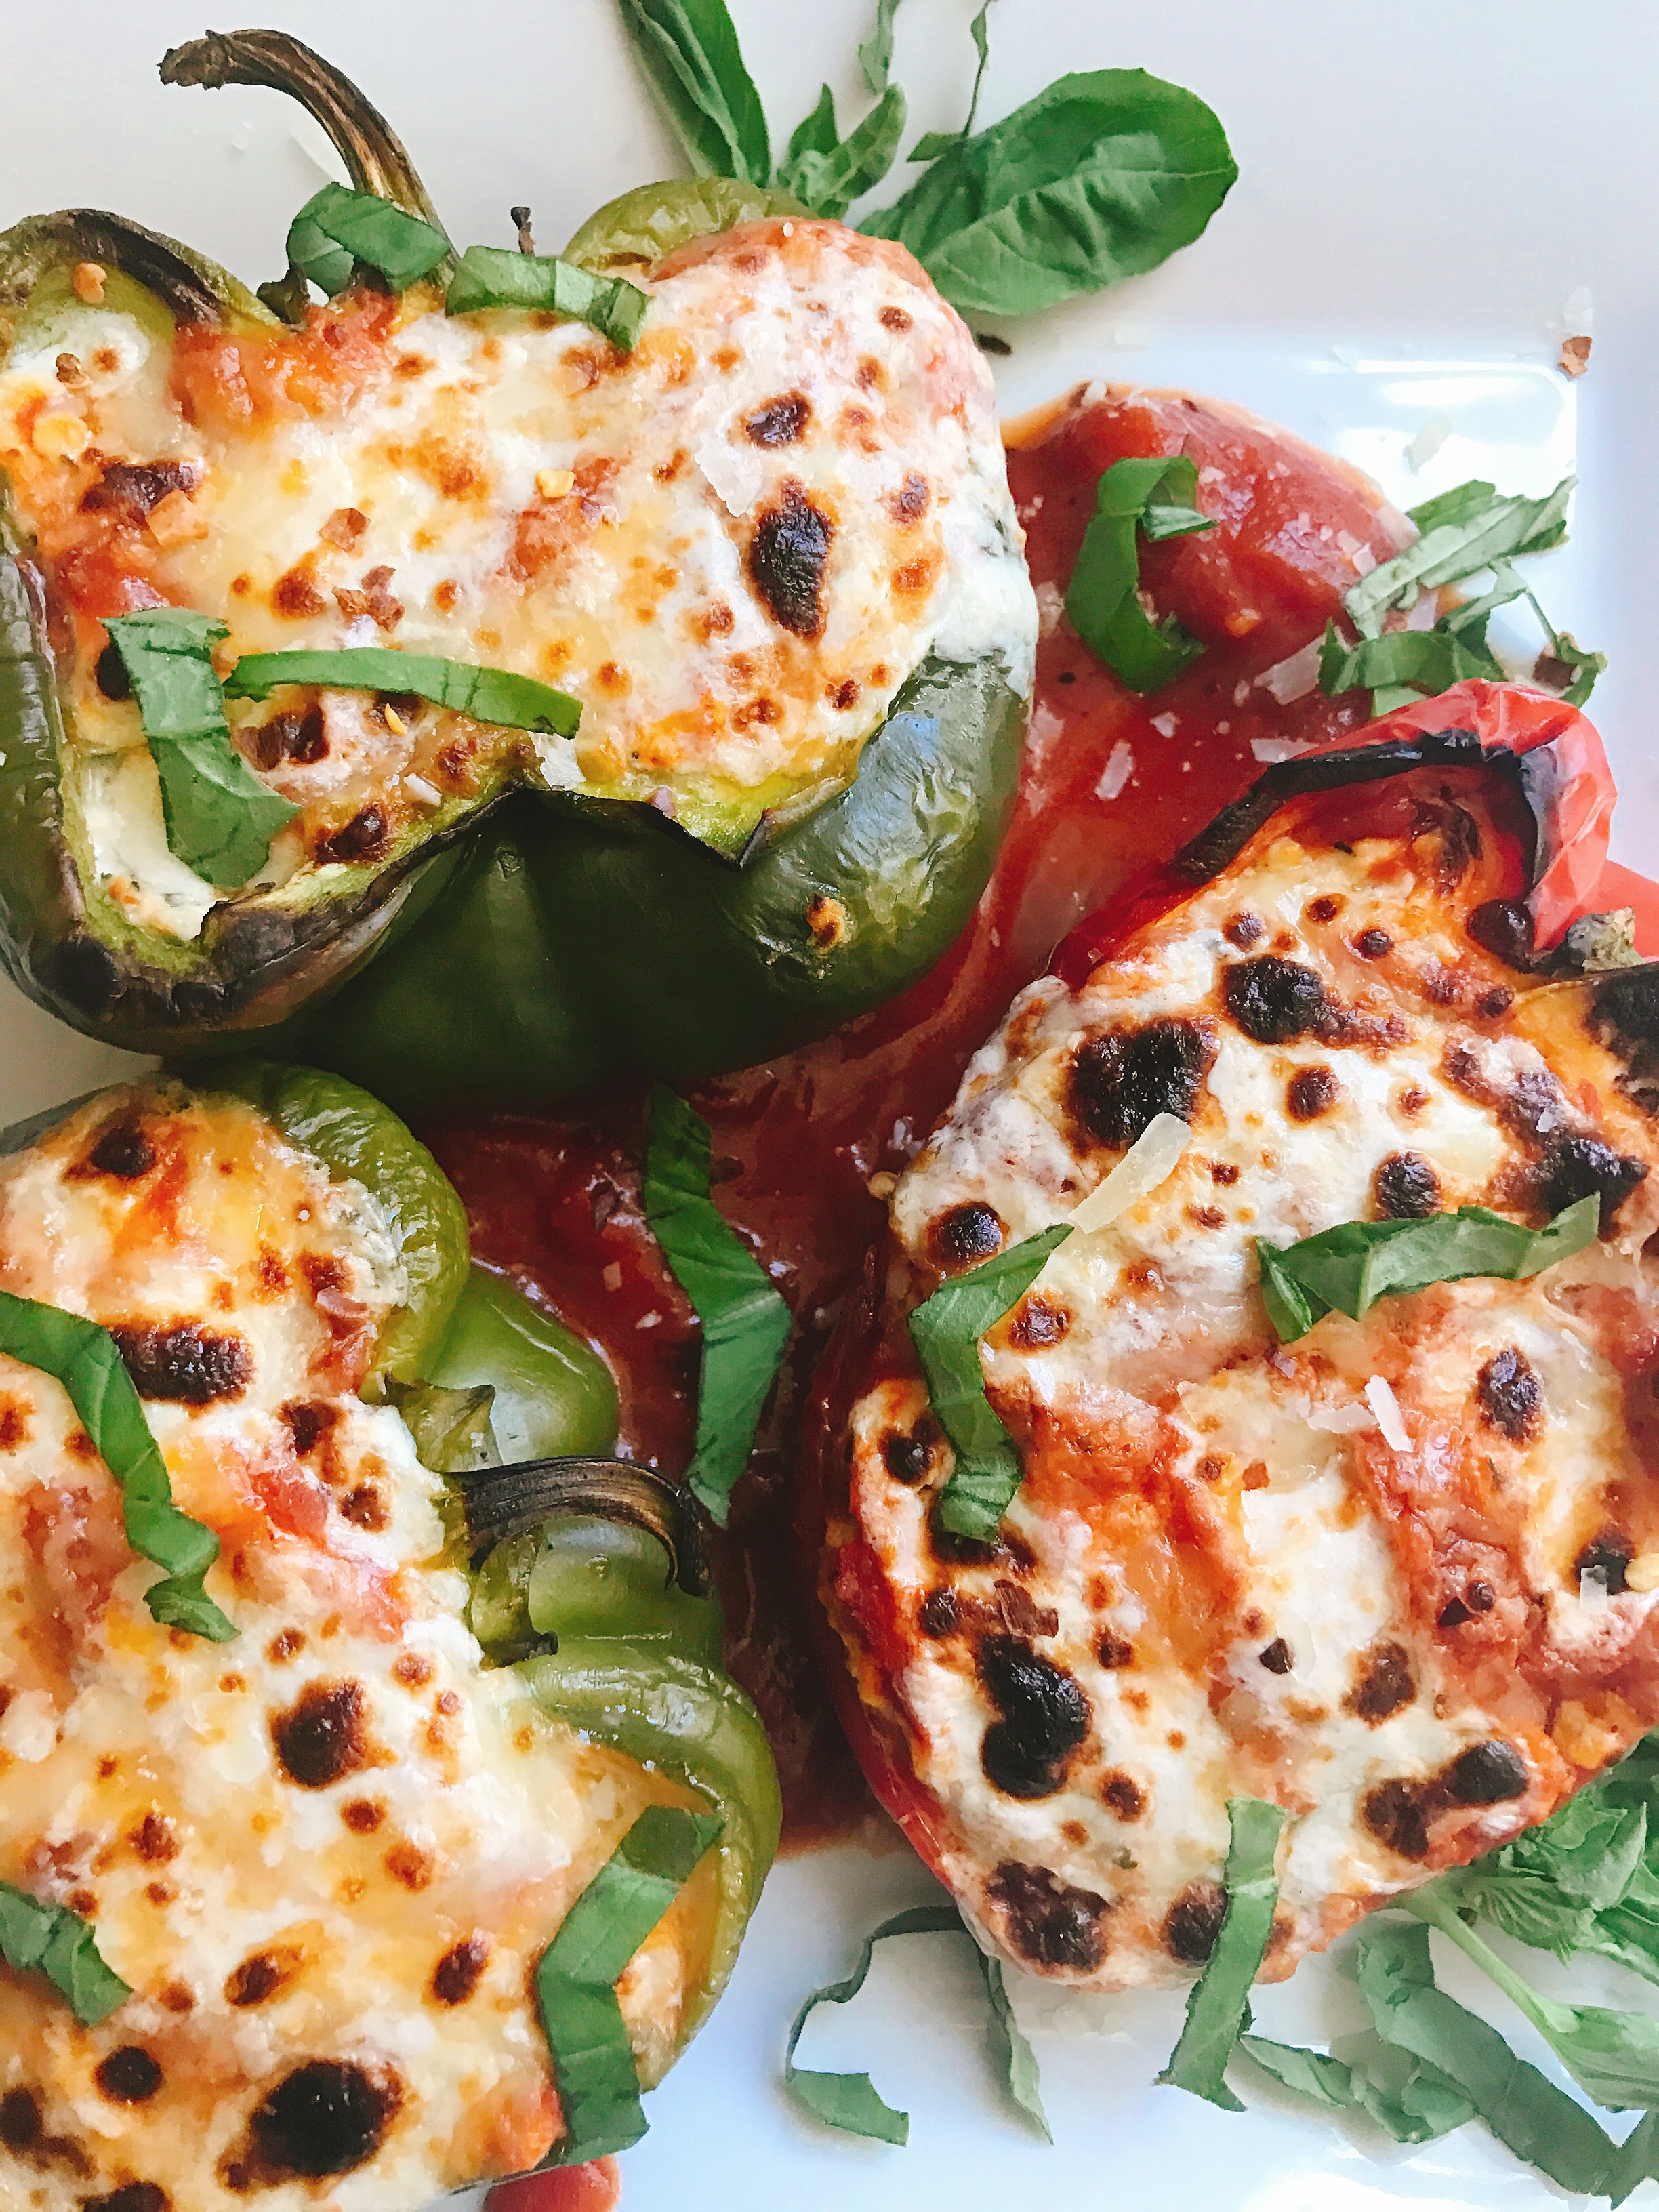 A Healthier And Gluten Free Twist On Lasagna Bell Peppers Are Layered With Ricotta Cheese